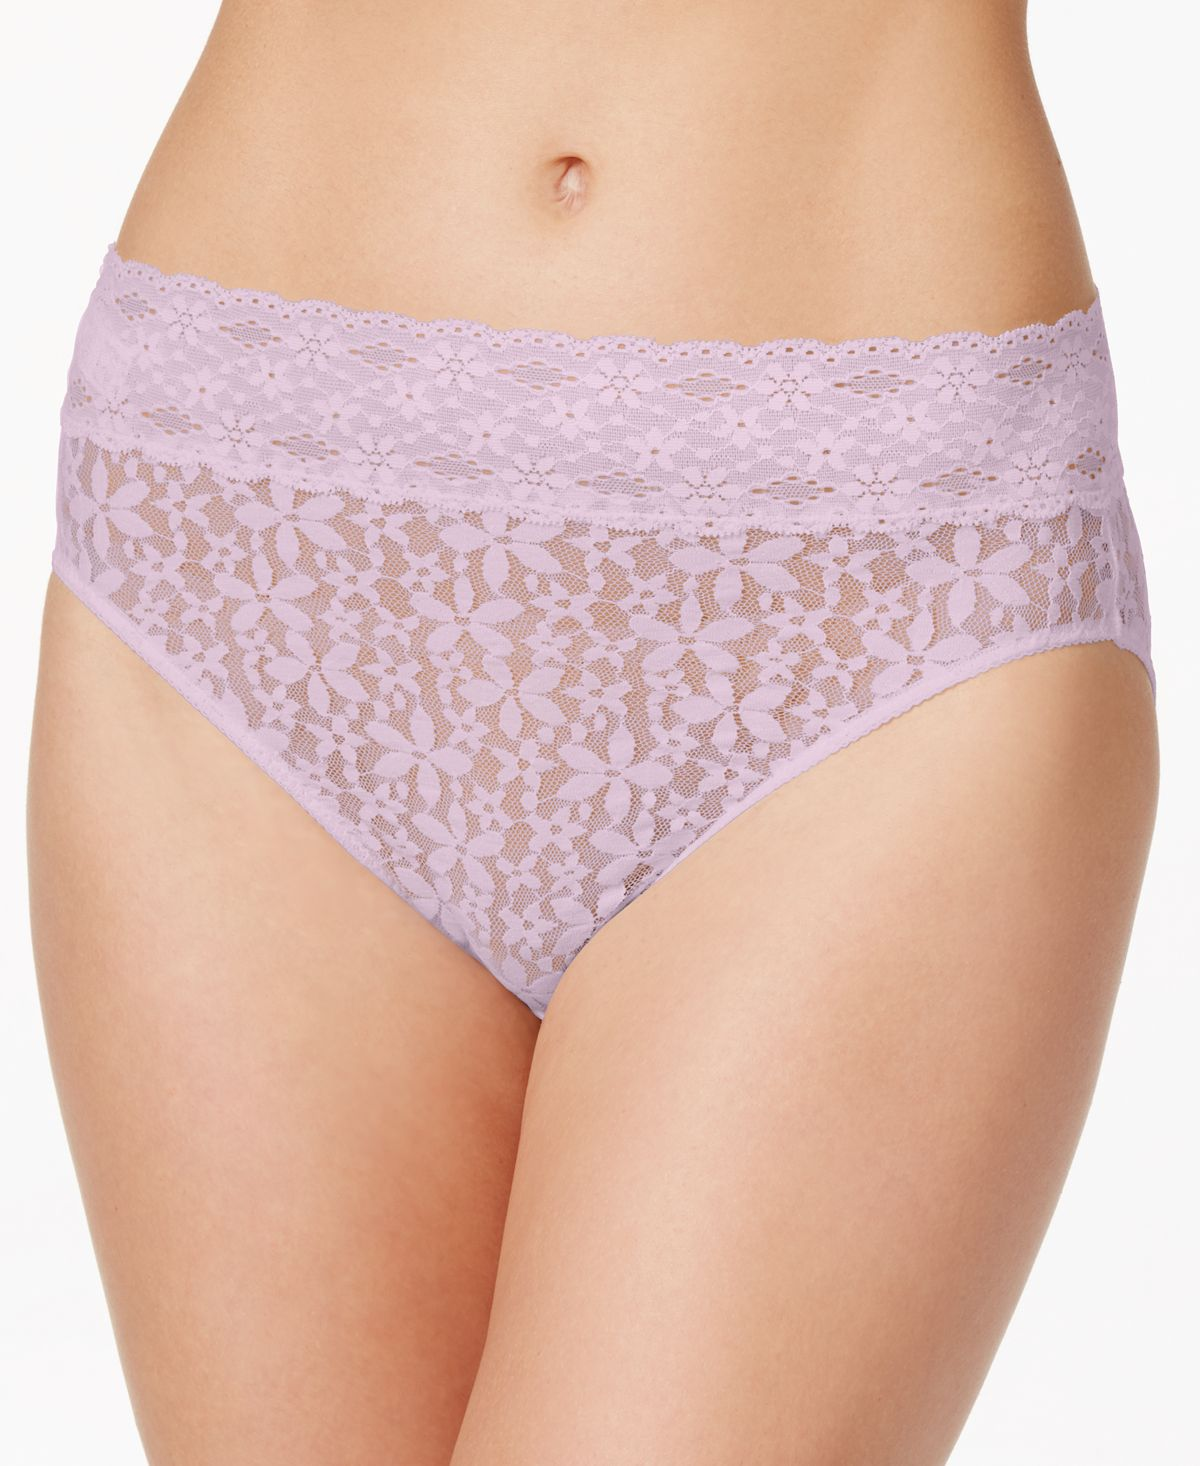 Wacoal Halo Sheer Lace Hi Cut Brief 870305 Lilac Snow